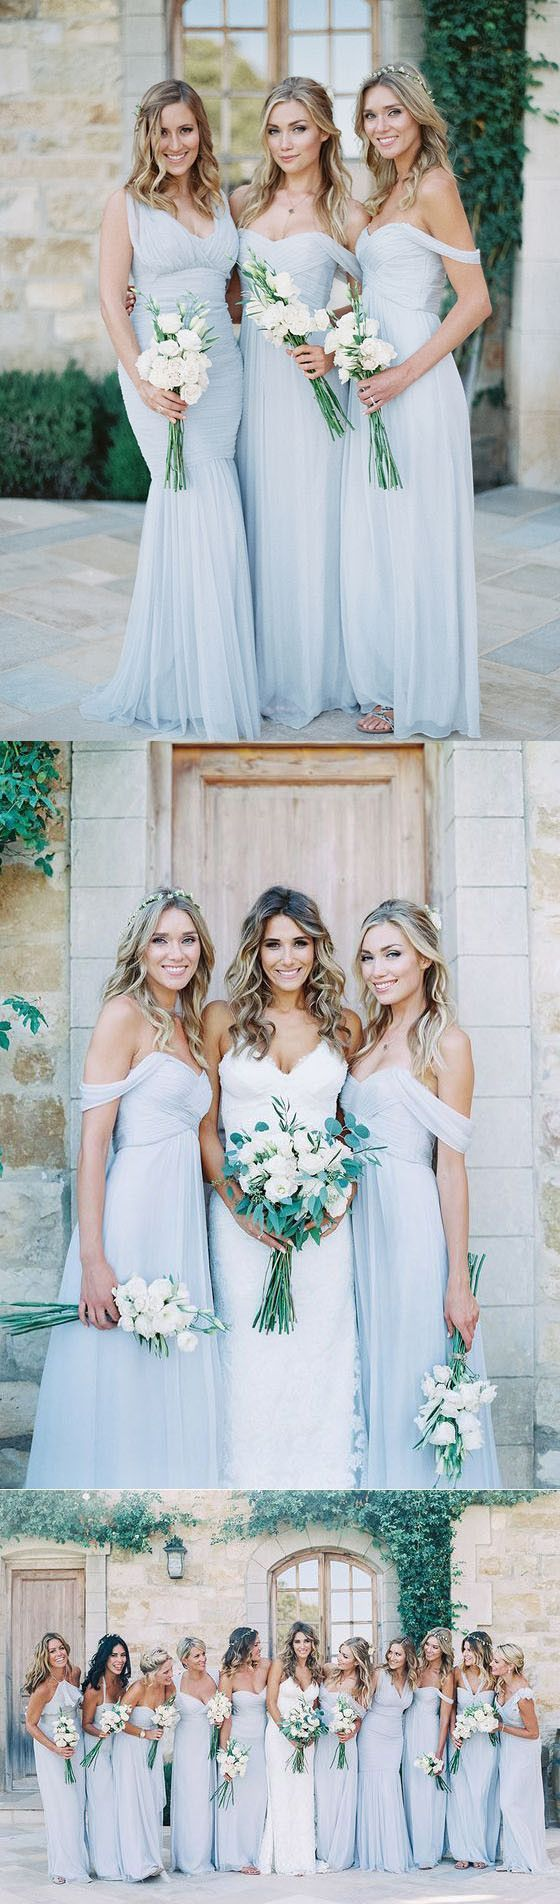 Best 25 mismatched bridesmaid dresses ideas on pinterest best 25 mismatched bridesmaid dresses ideas on pinterest different bridesmaid dresses mixed bridesmaid dresses and bridesmaid dress shades ombrellifo Gallery